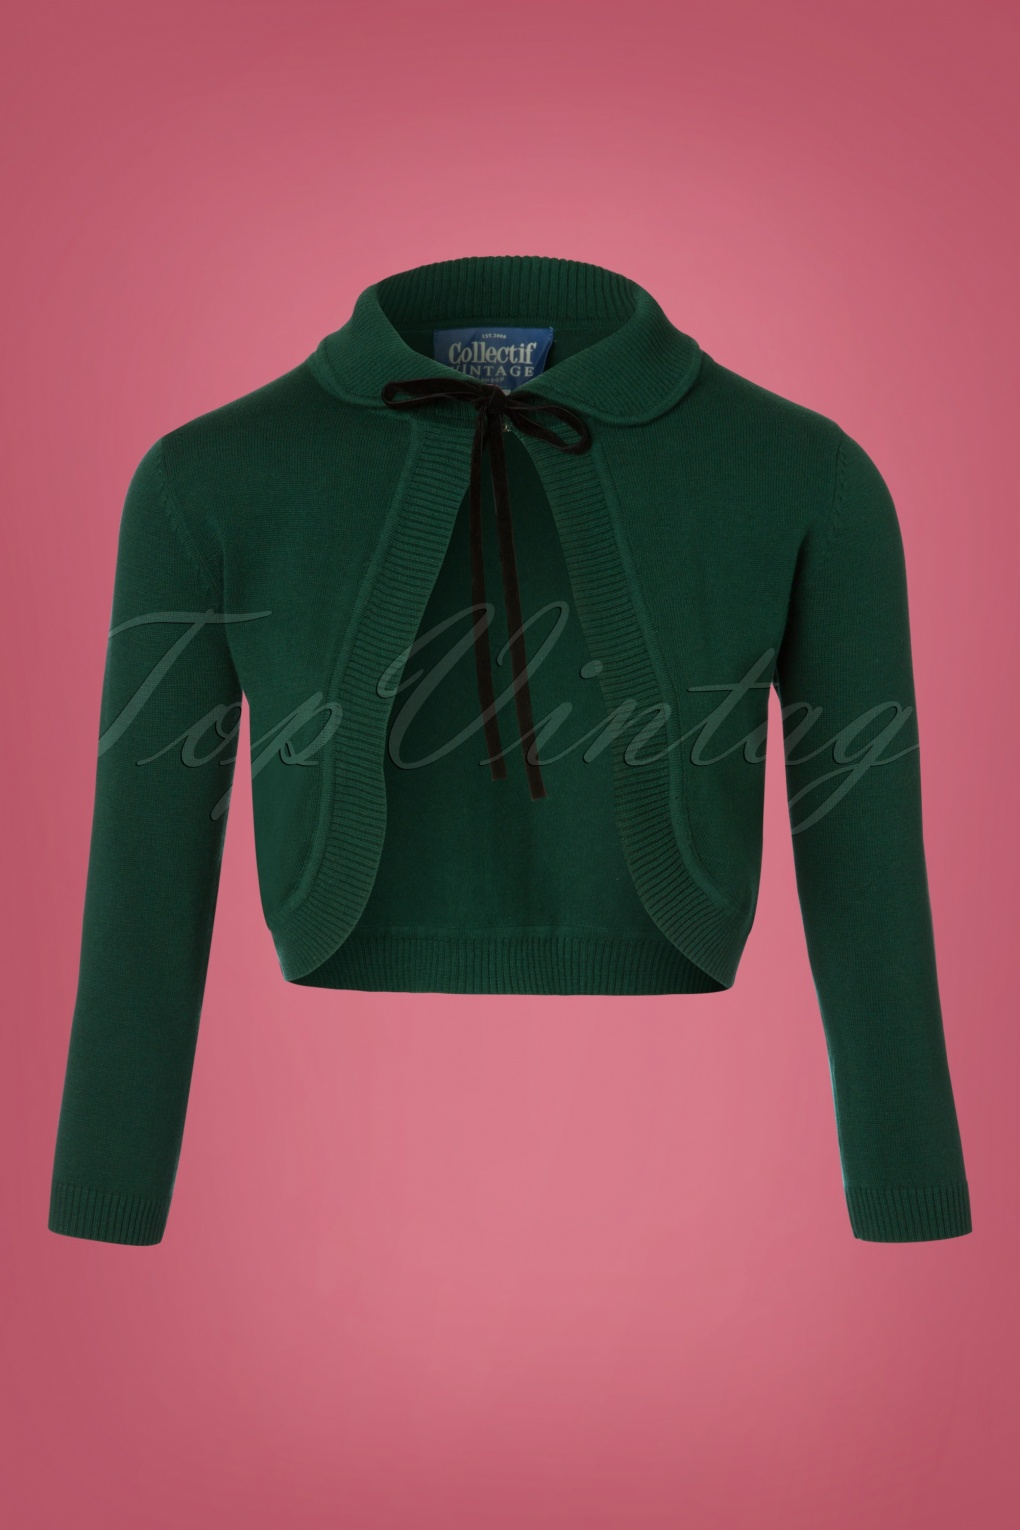 Retro Vintage Sweaters 40s Andi Knitted Bolero in Green £41.94 AT vintagedancer.com